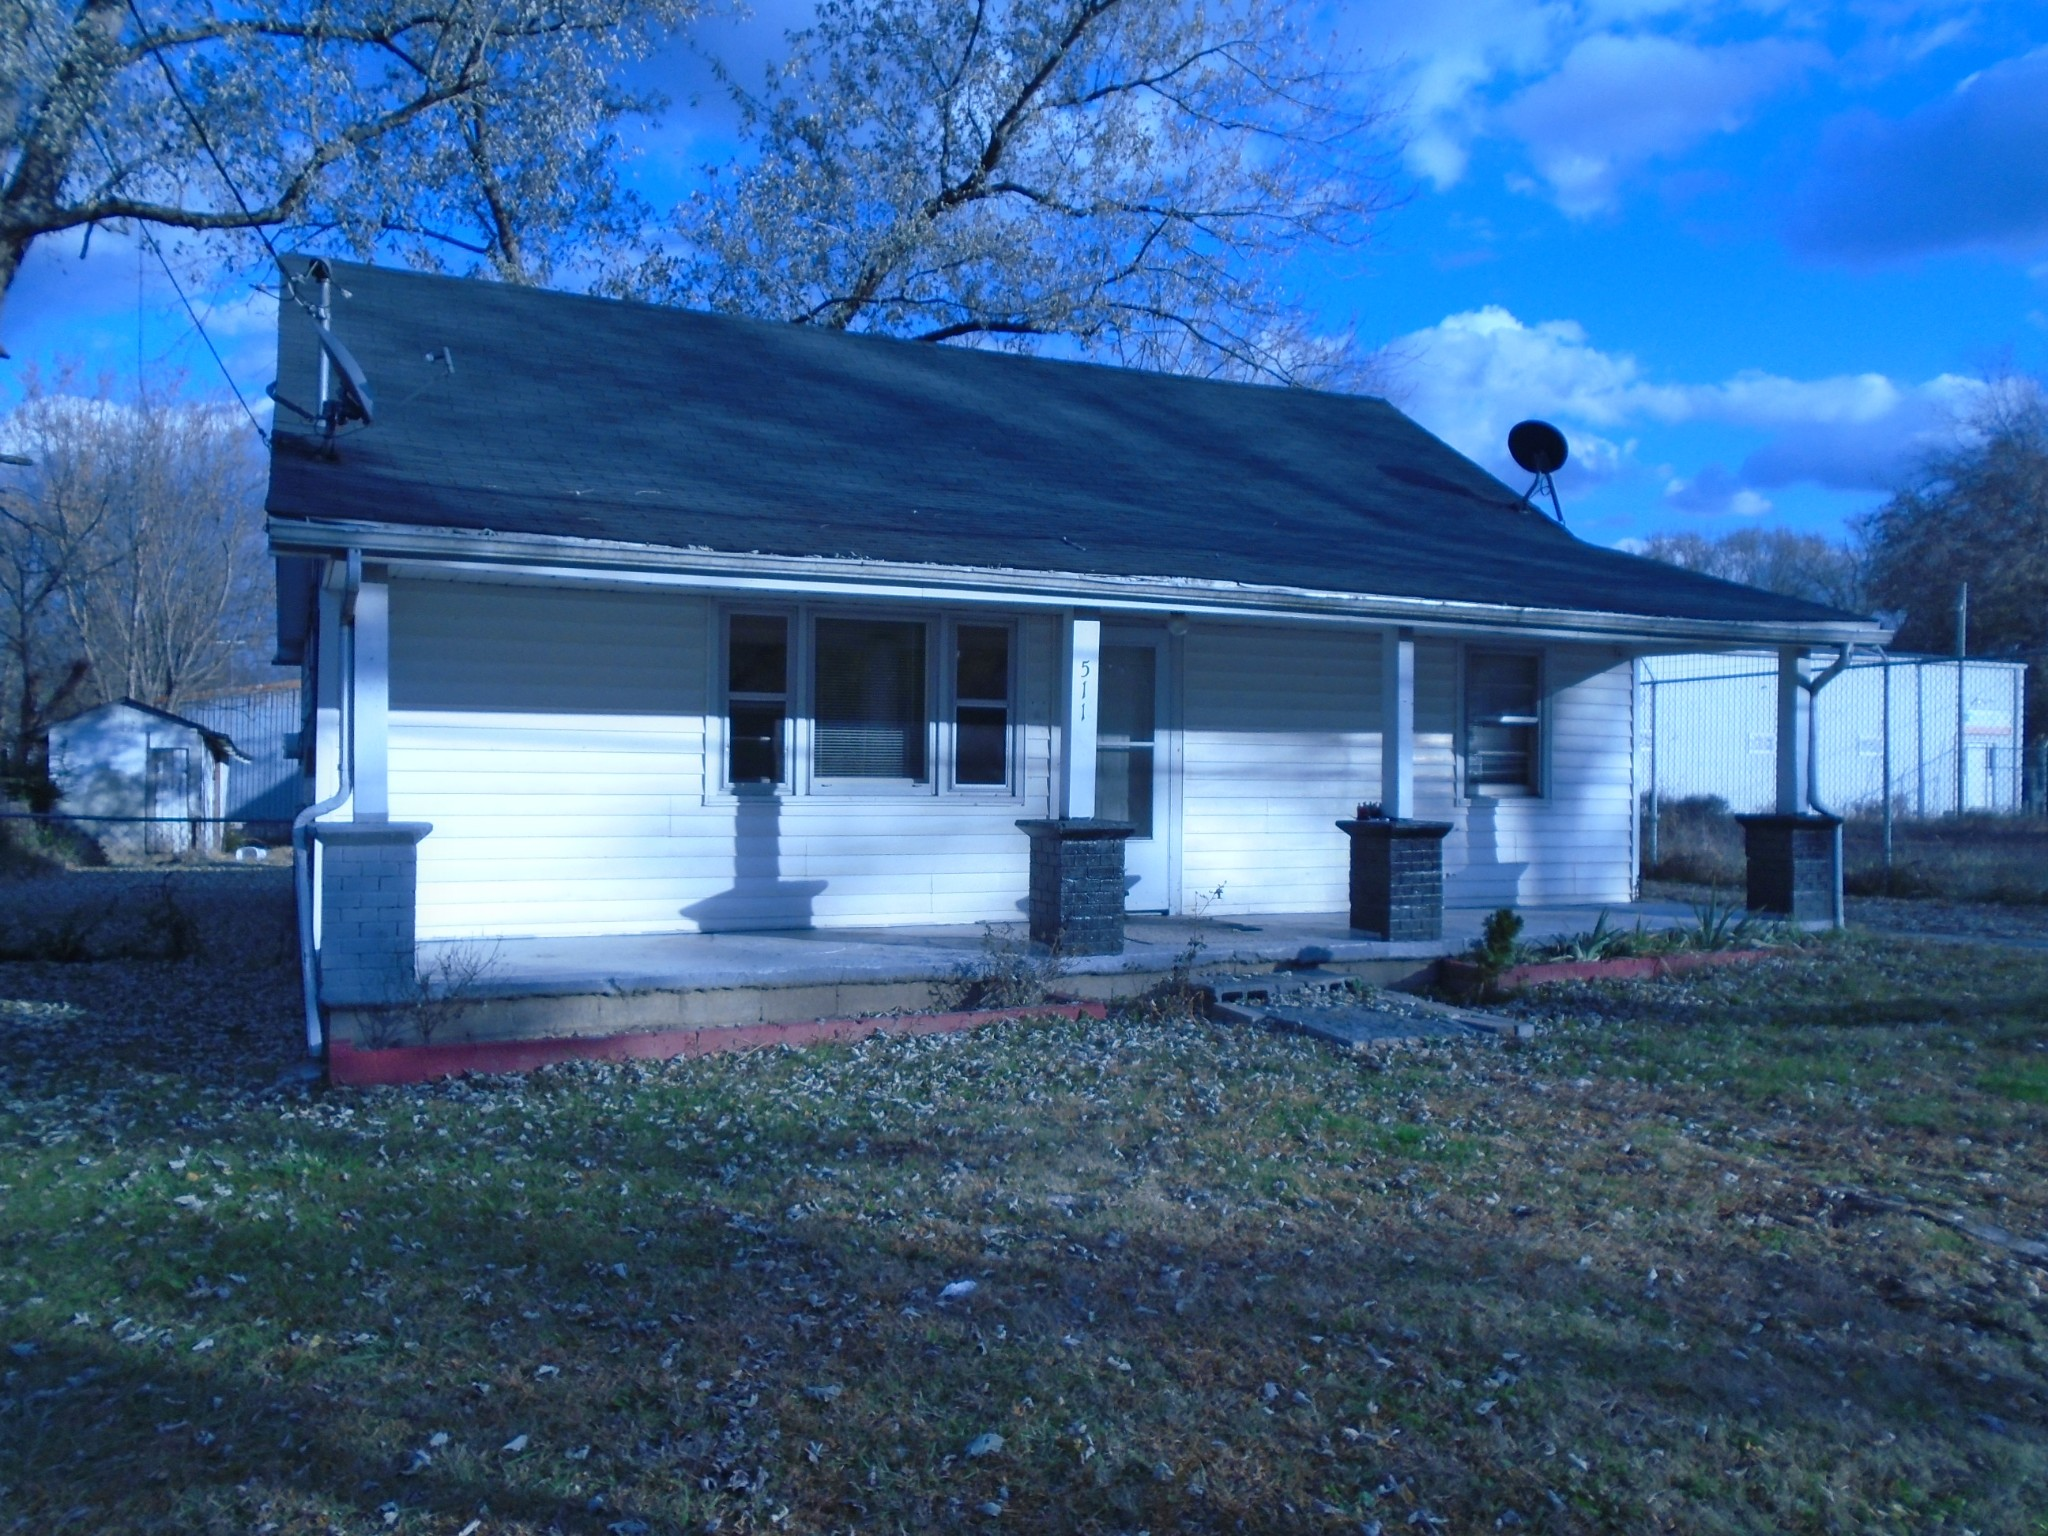 511 Oakdale St, Manchester, Tennessee